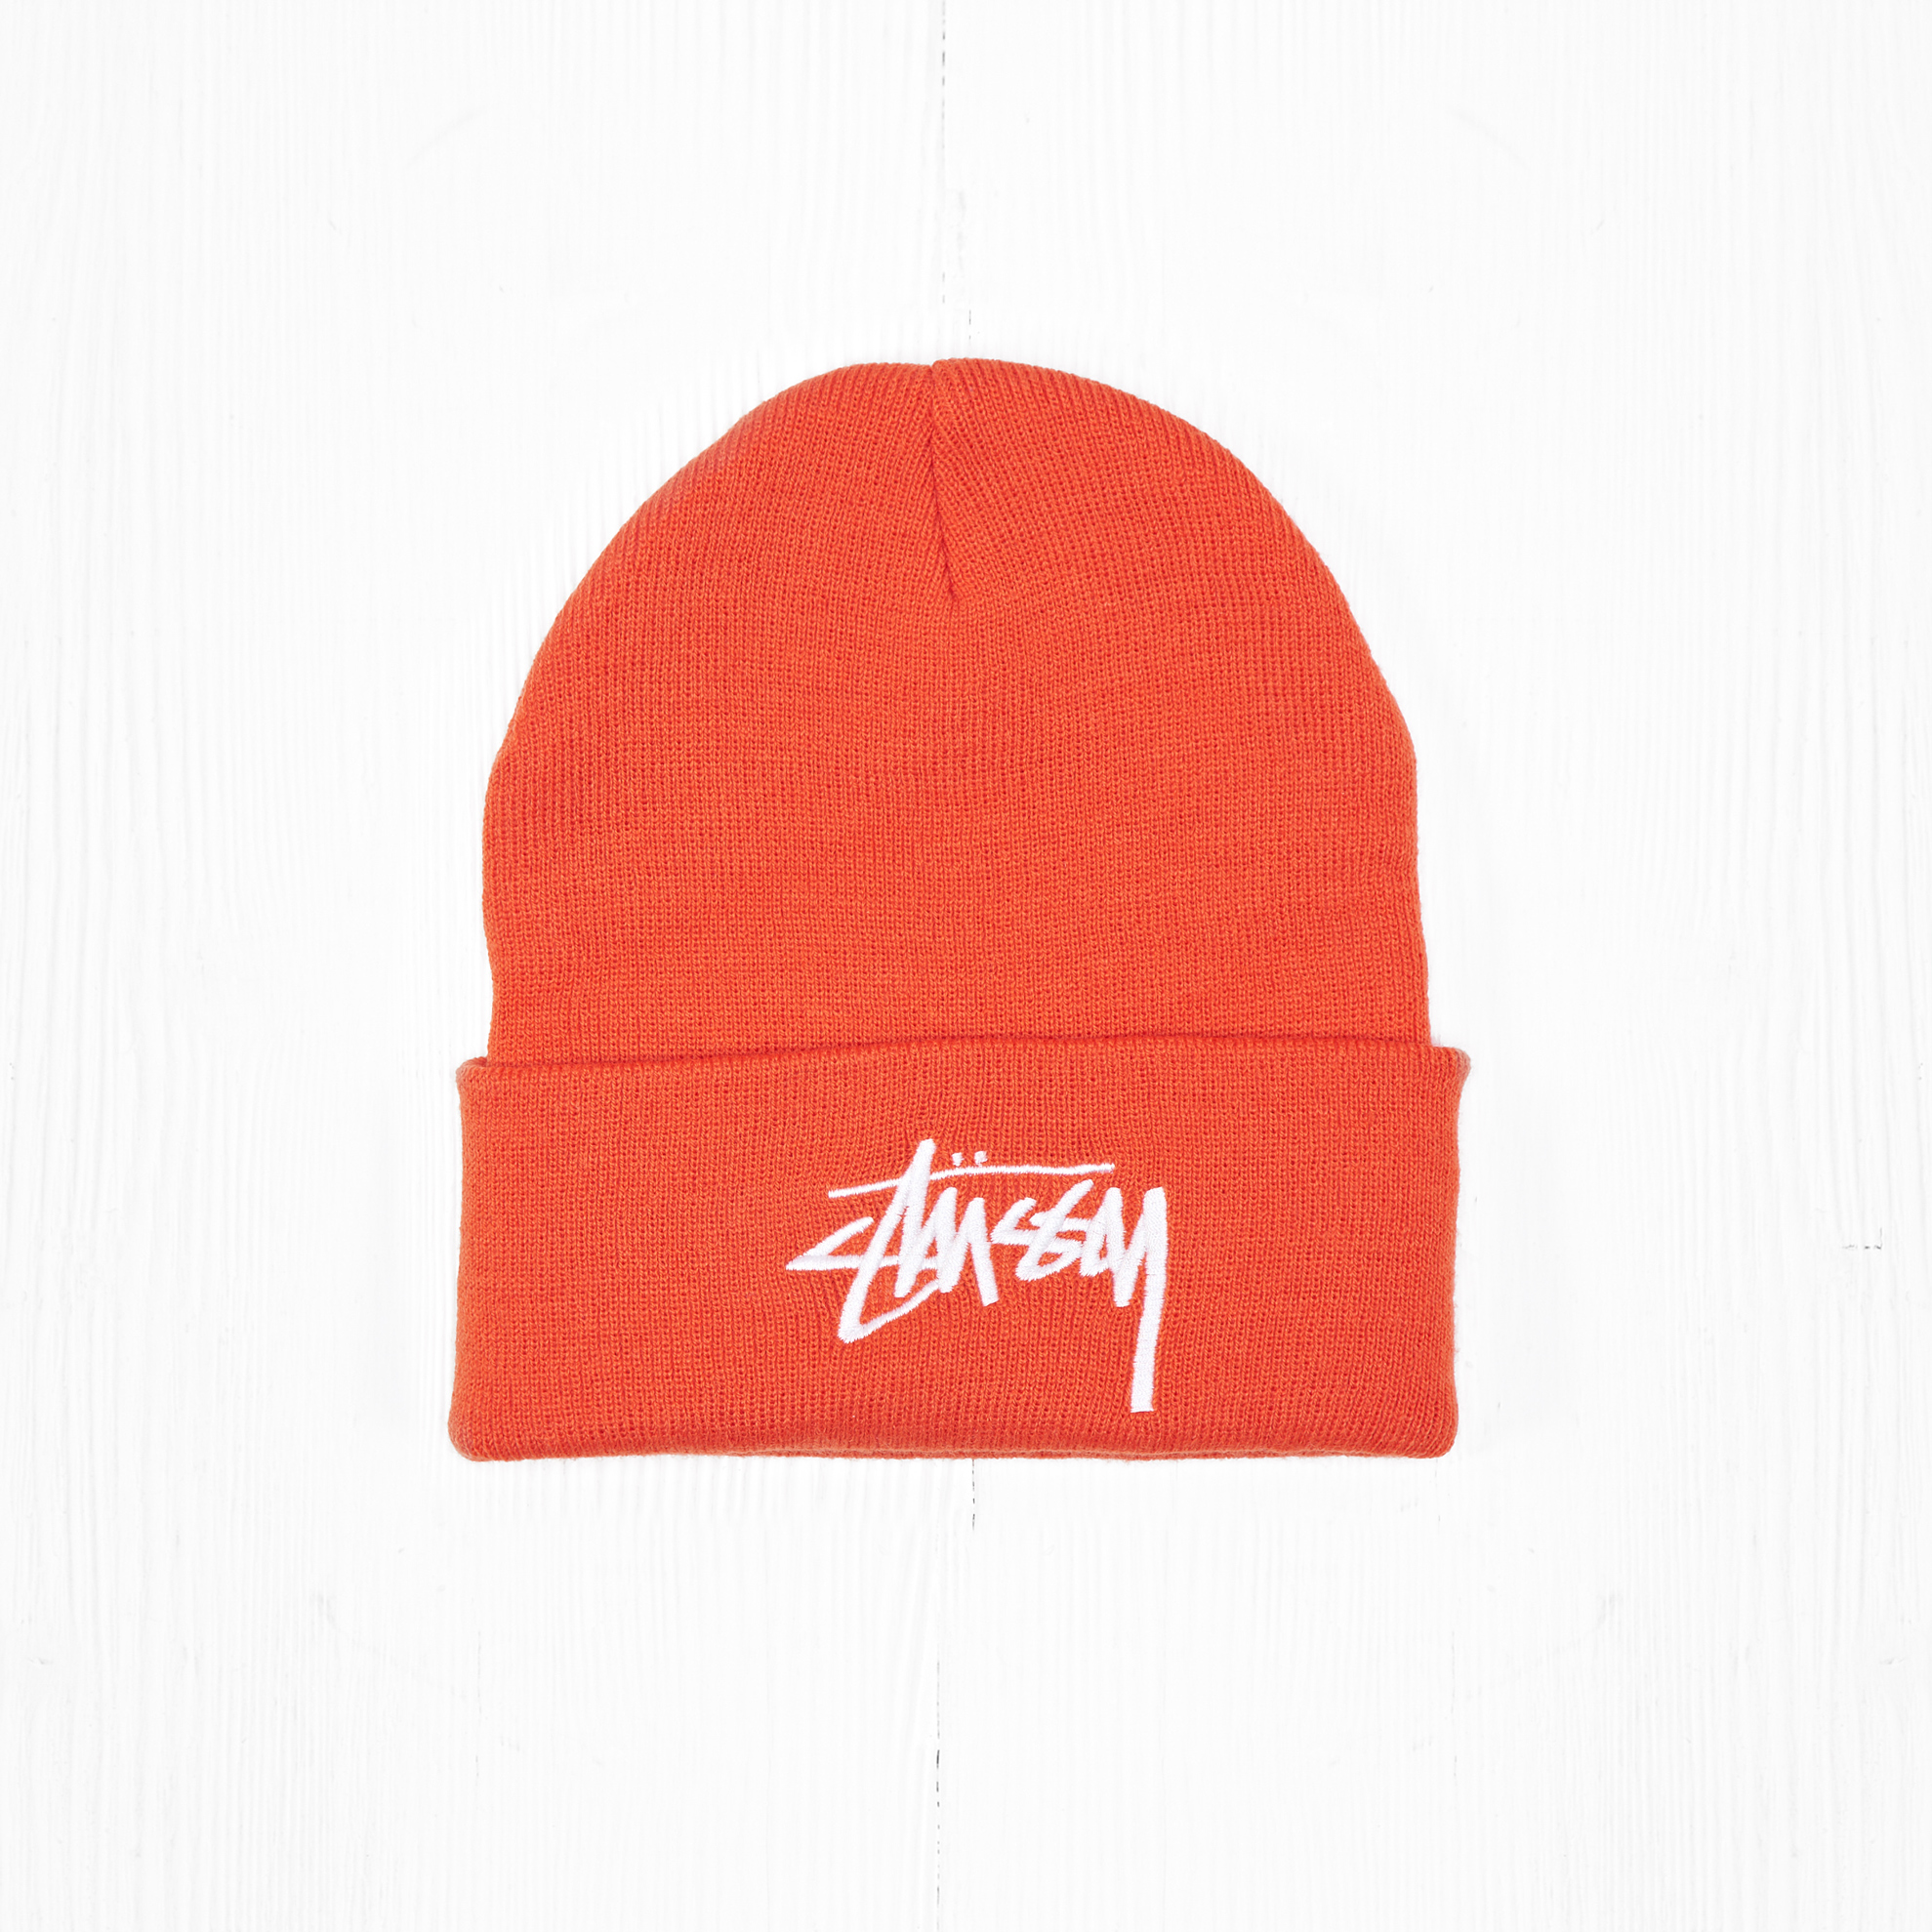 Шапка Stussy STOCK Orange